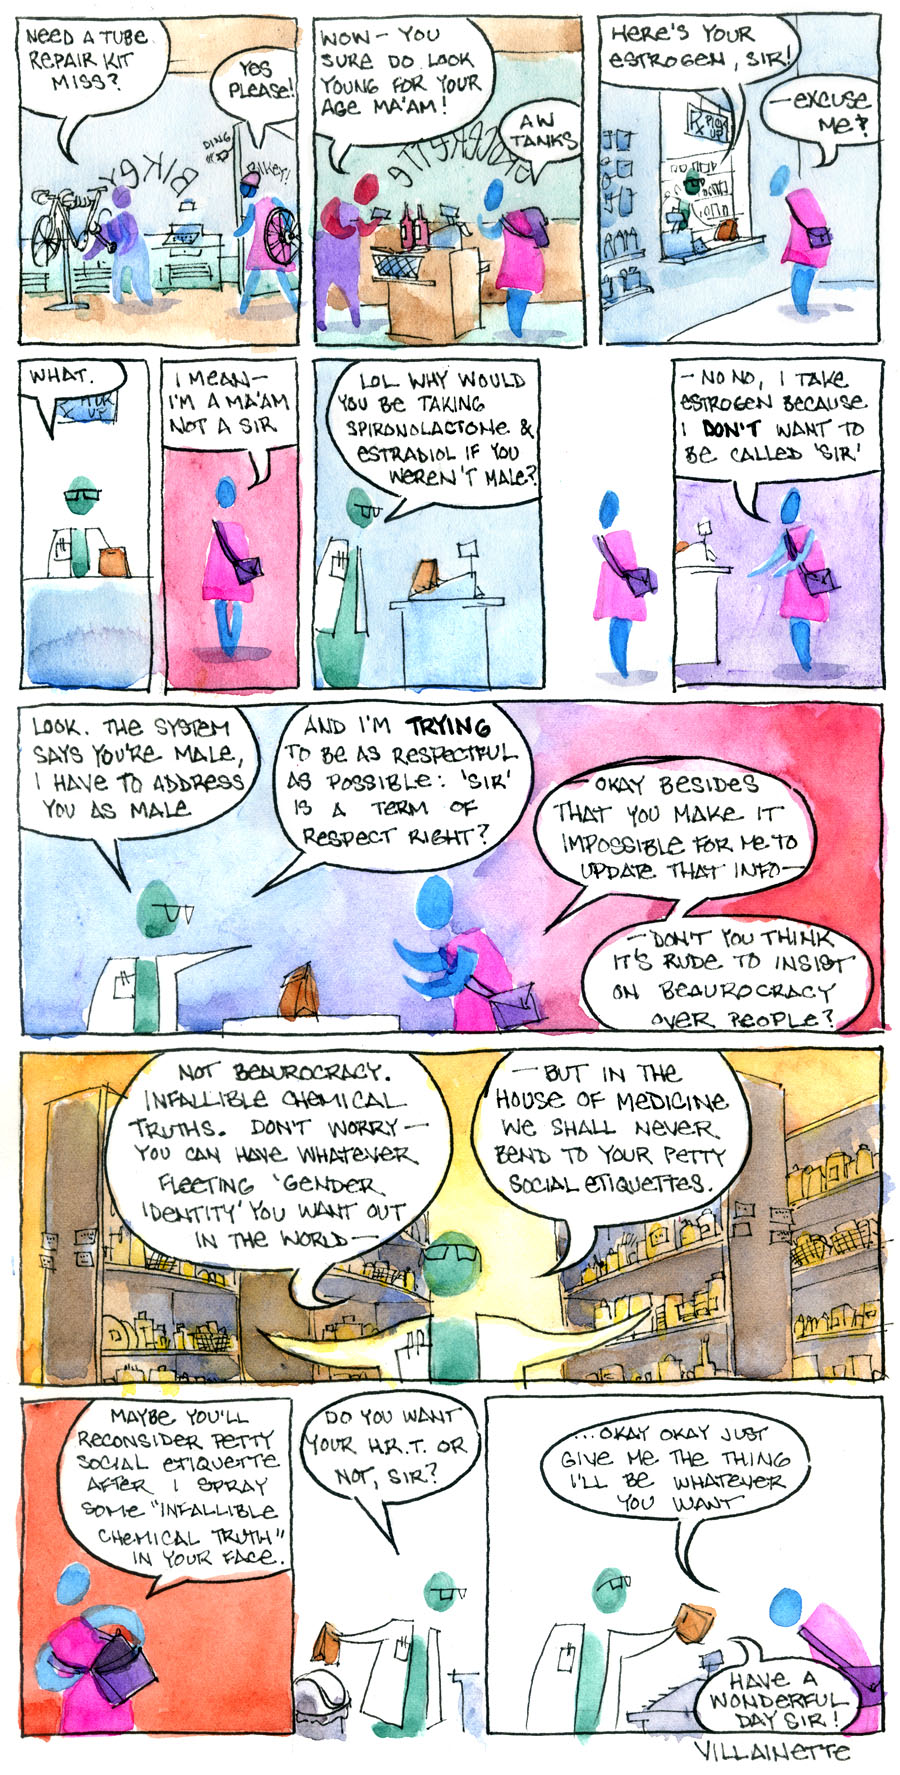 a geniusly witty comic about gender, rendered in virtuosic watercolor, but lacking an image description